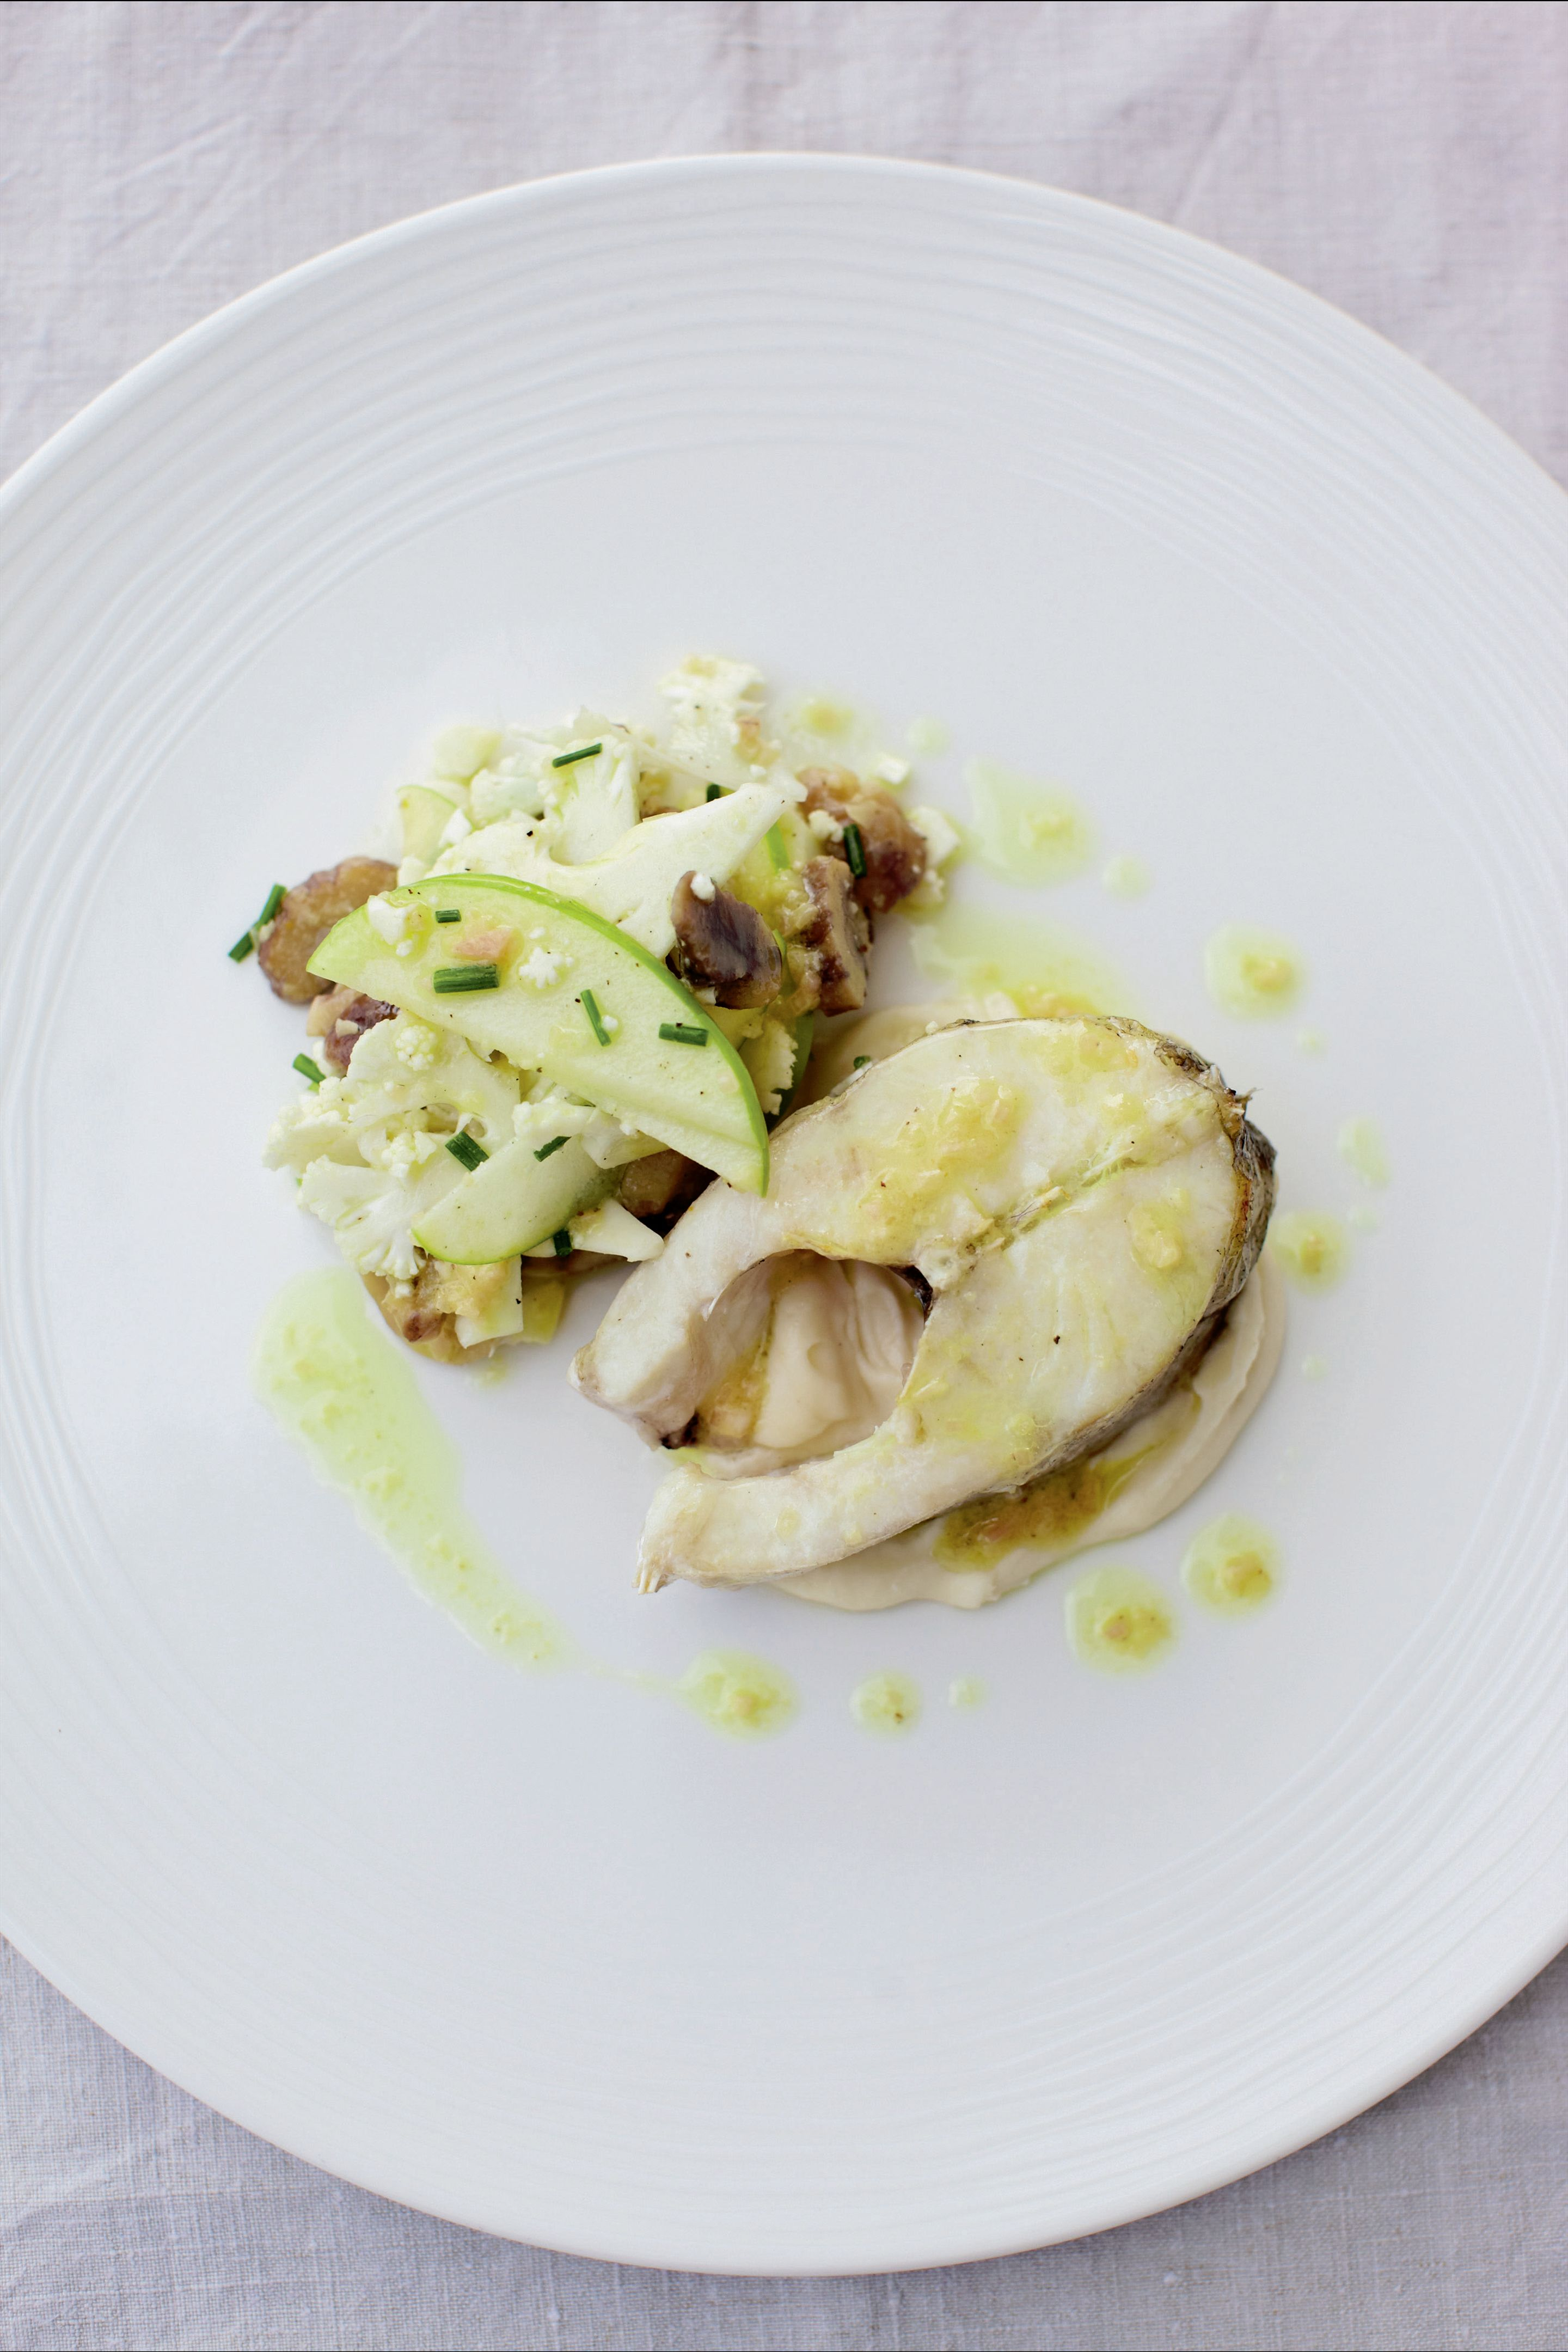 Grilled haddock with a salad of cauliflower, apples and chestnuts